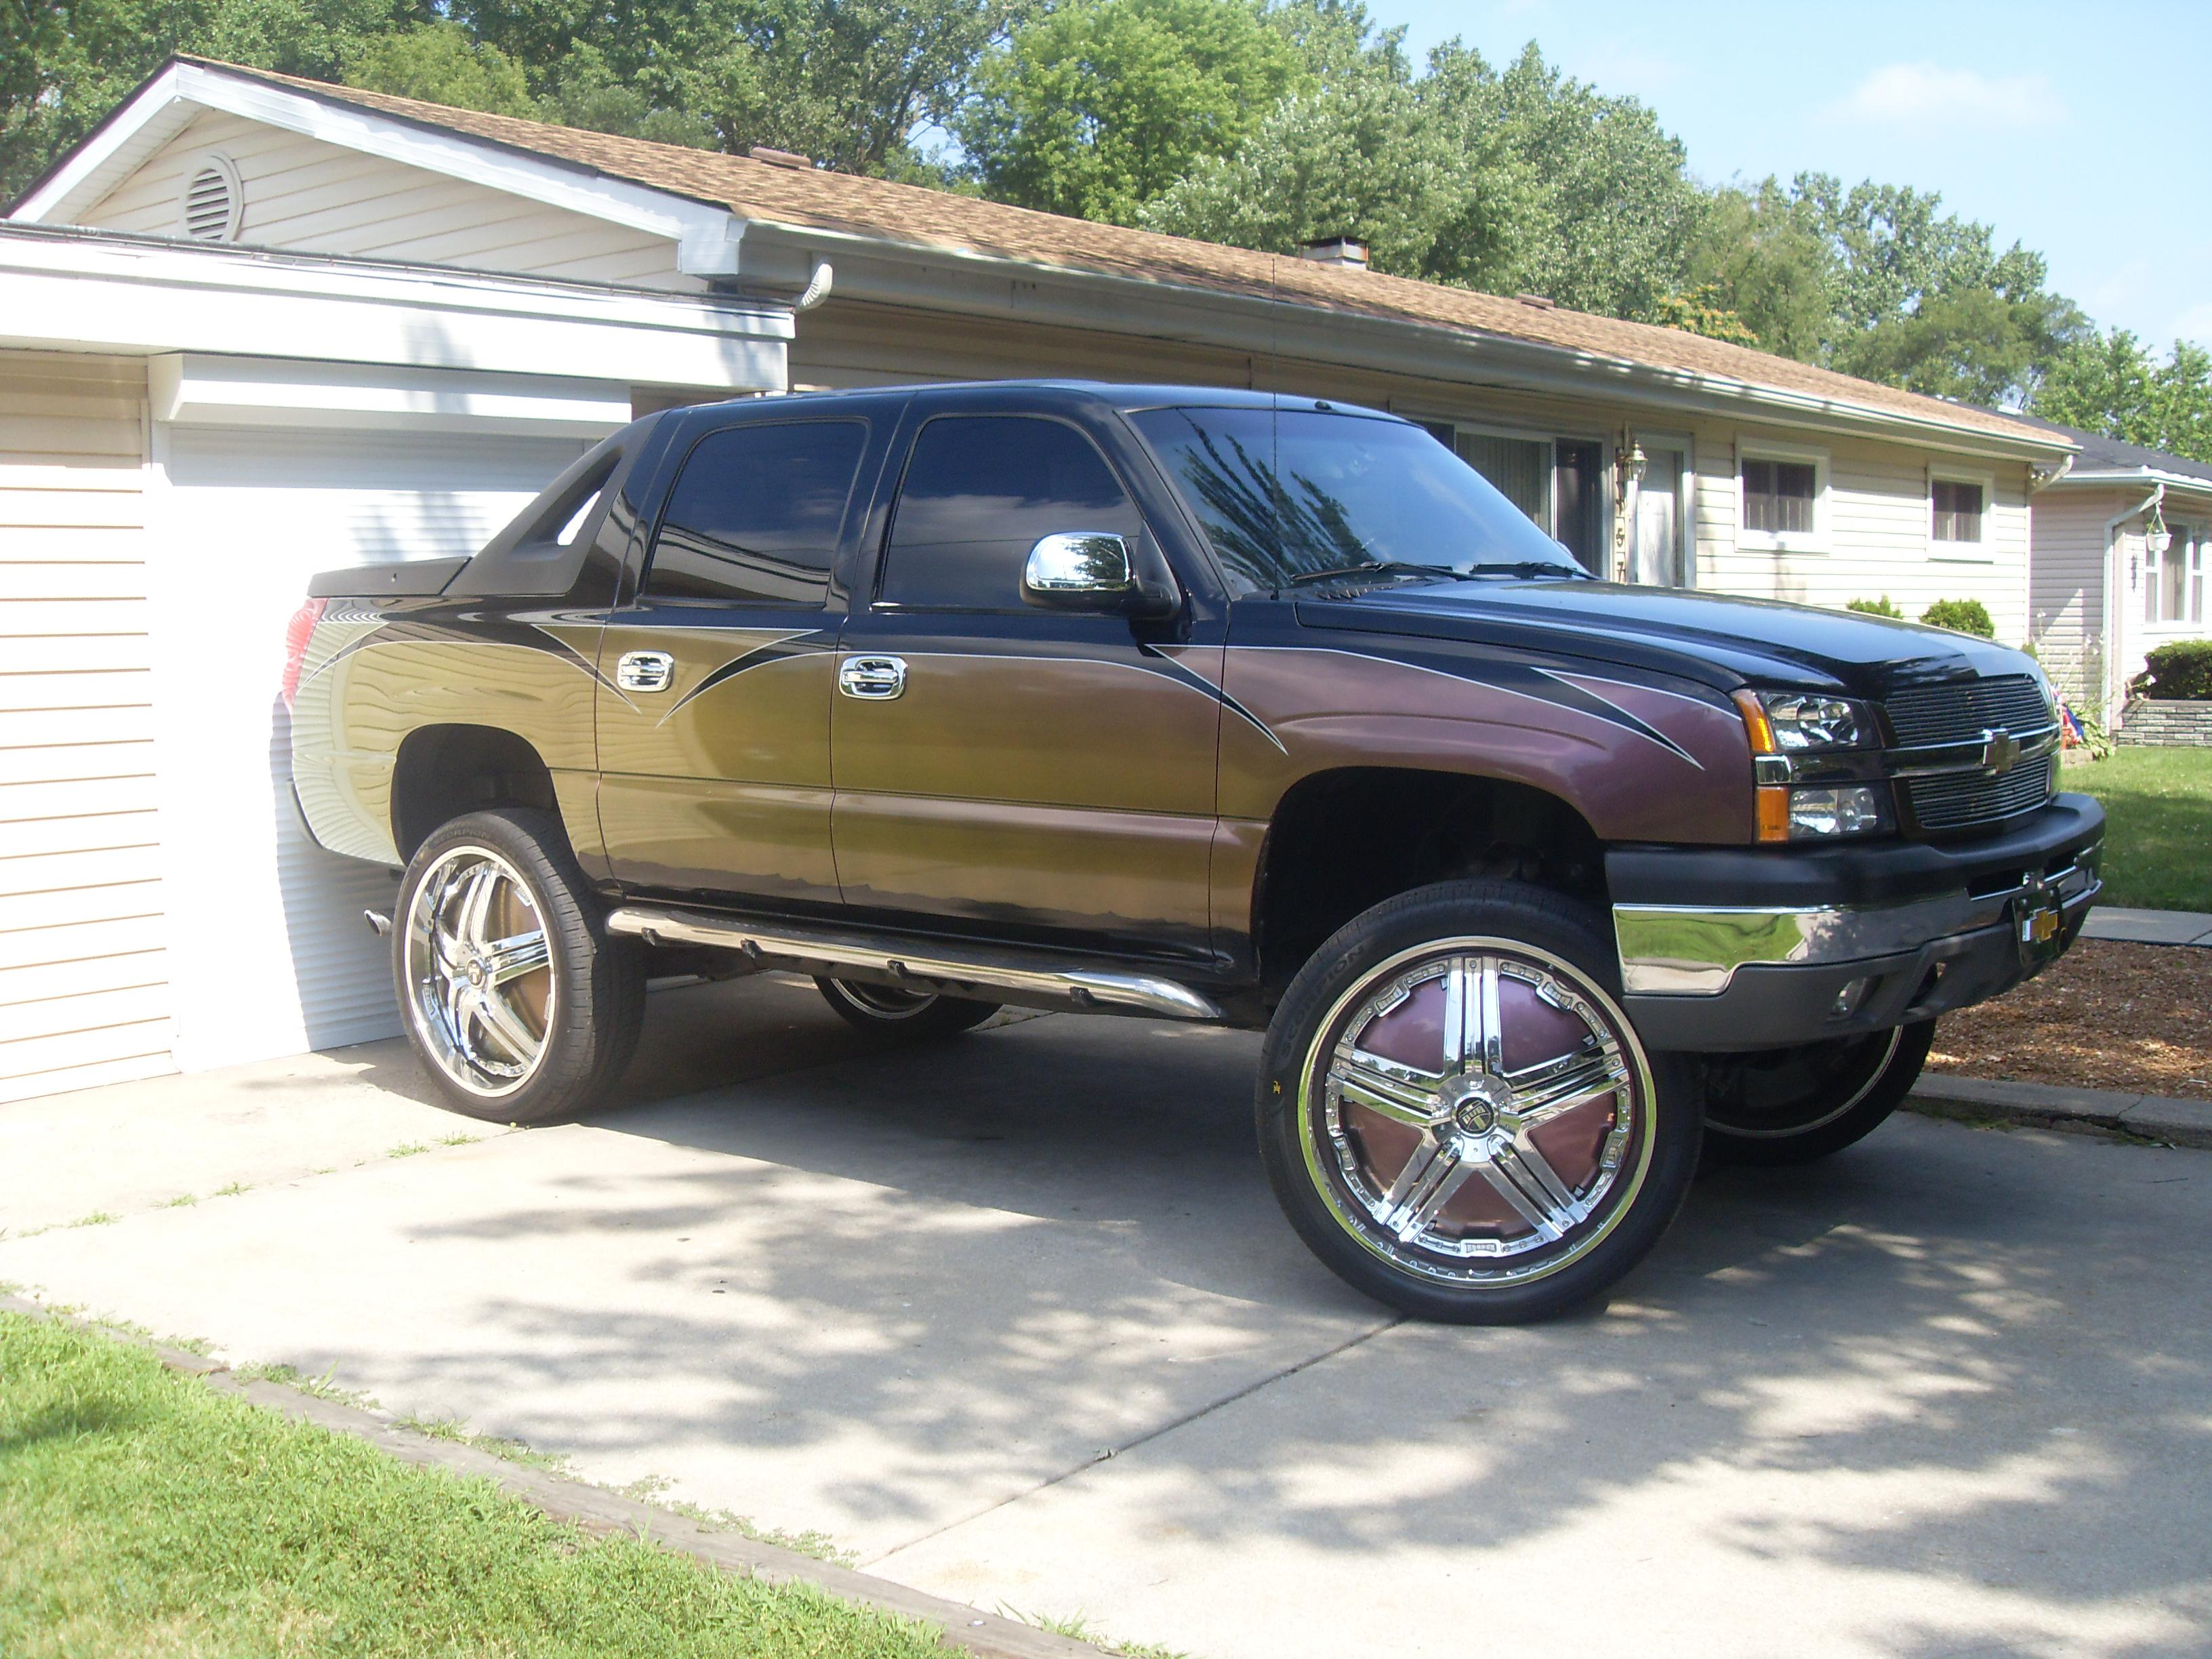 KINGOFTHAG 2004 Chevrolet Avalanche Specs Photos Modification